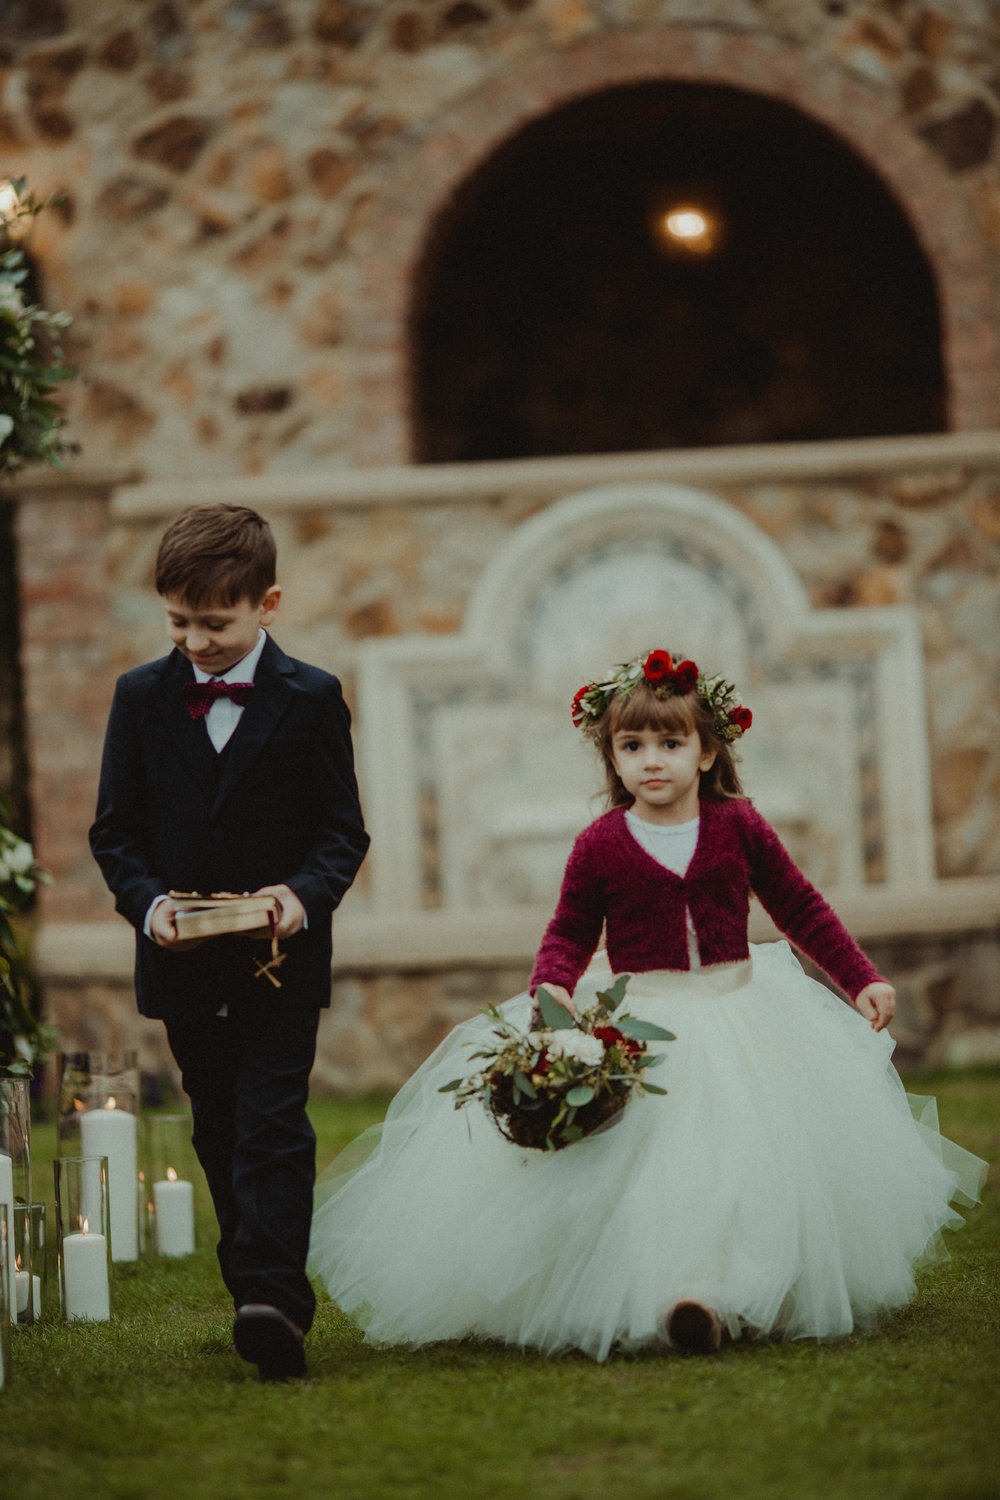 Making their way down the aisle, the ring bearer carried a bible while the flower girl carried her basket